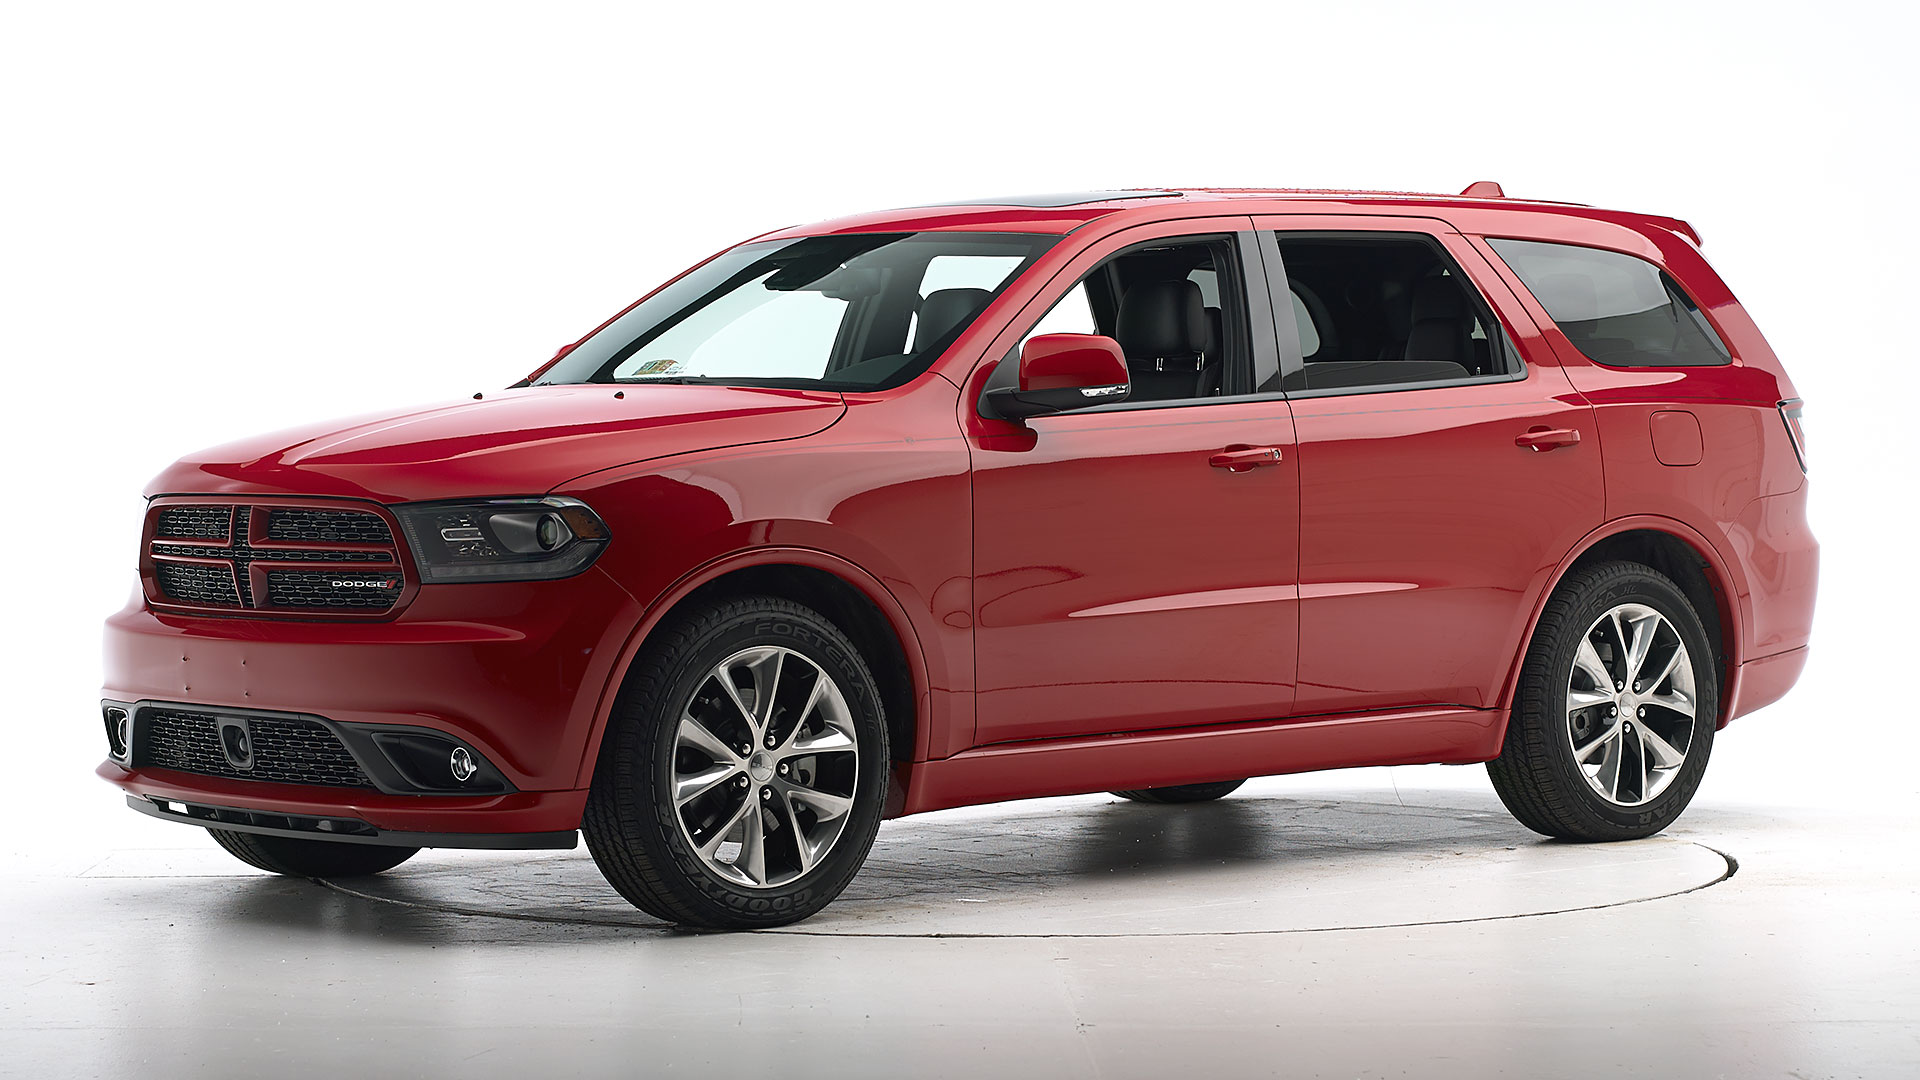 2014 Dodge Durango 4-door SUV